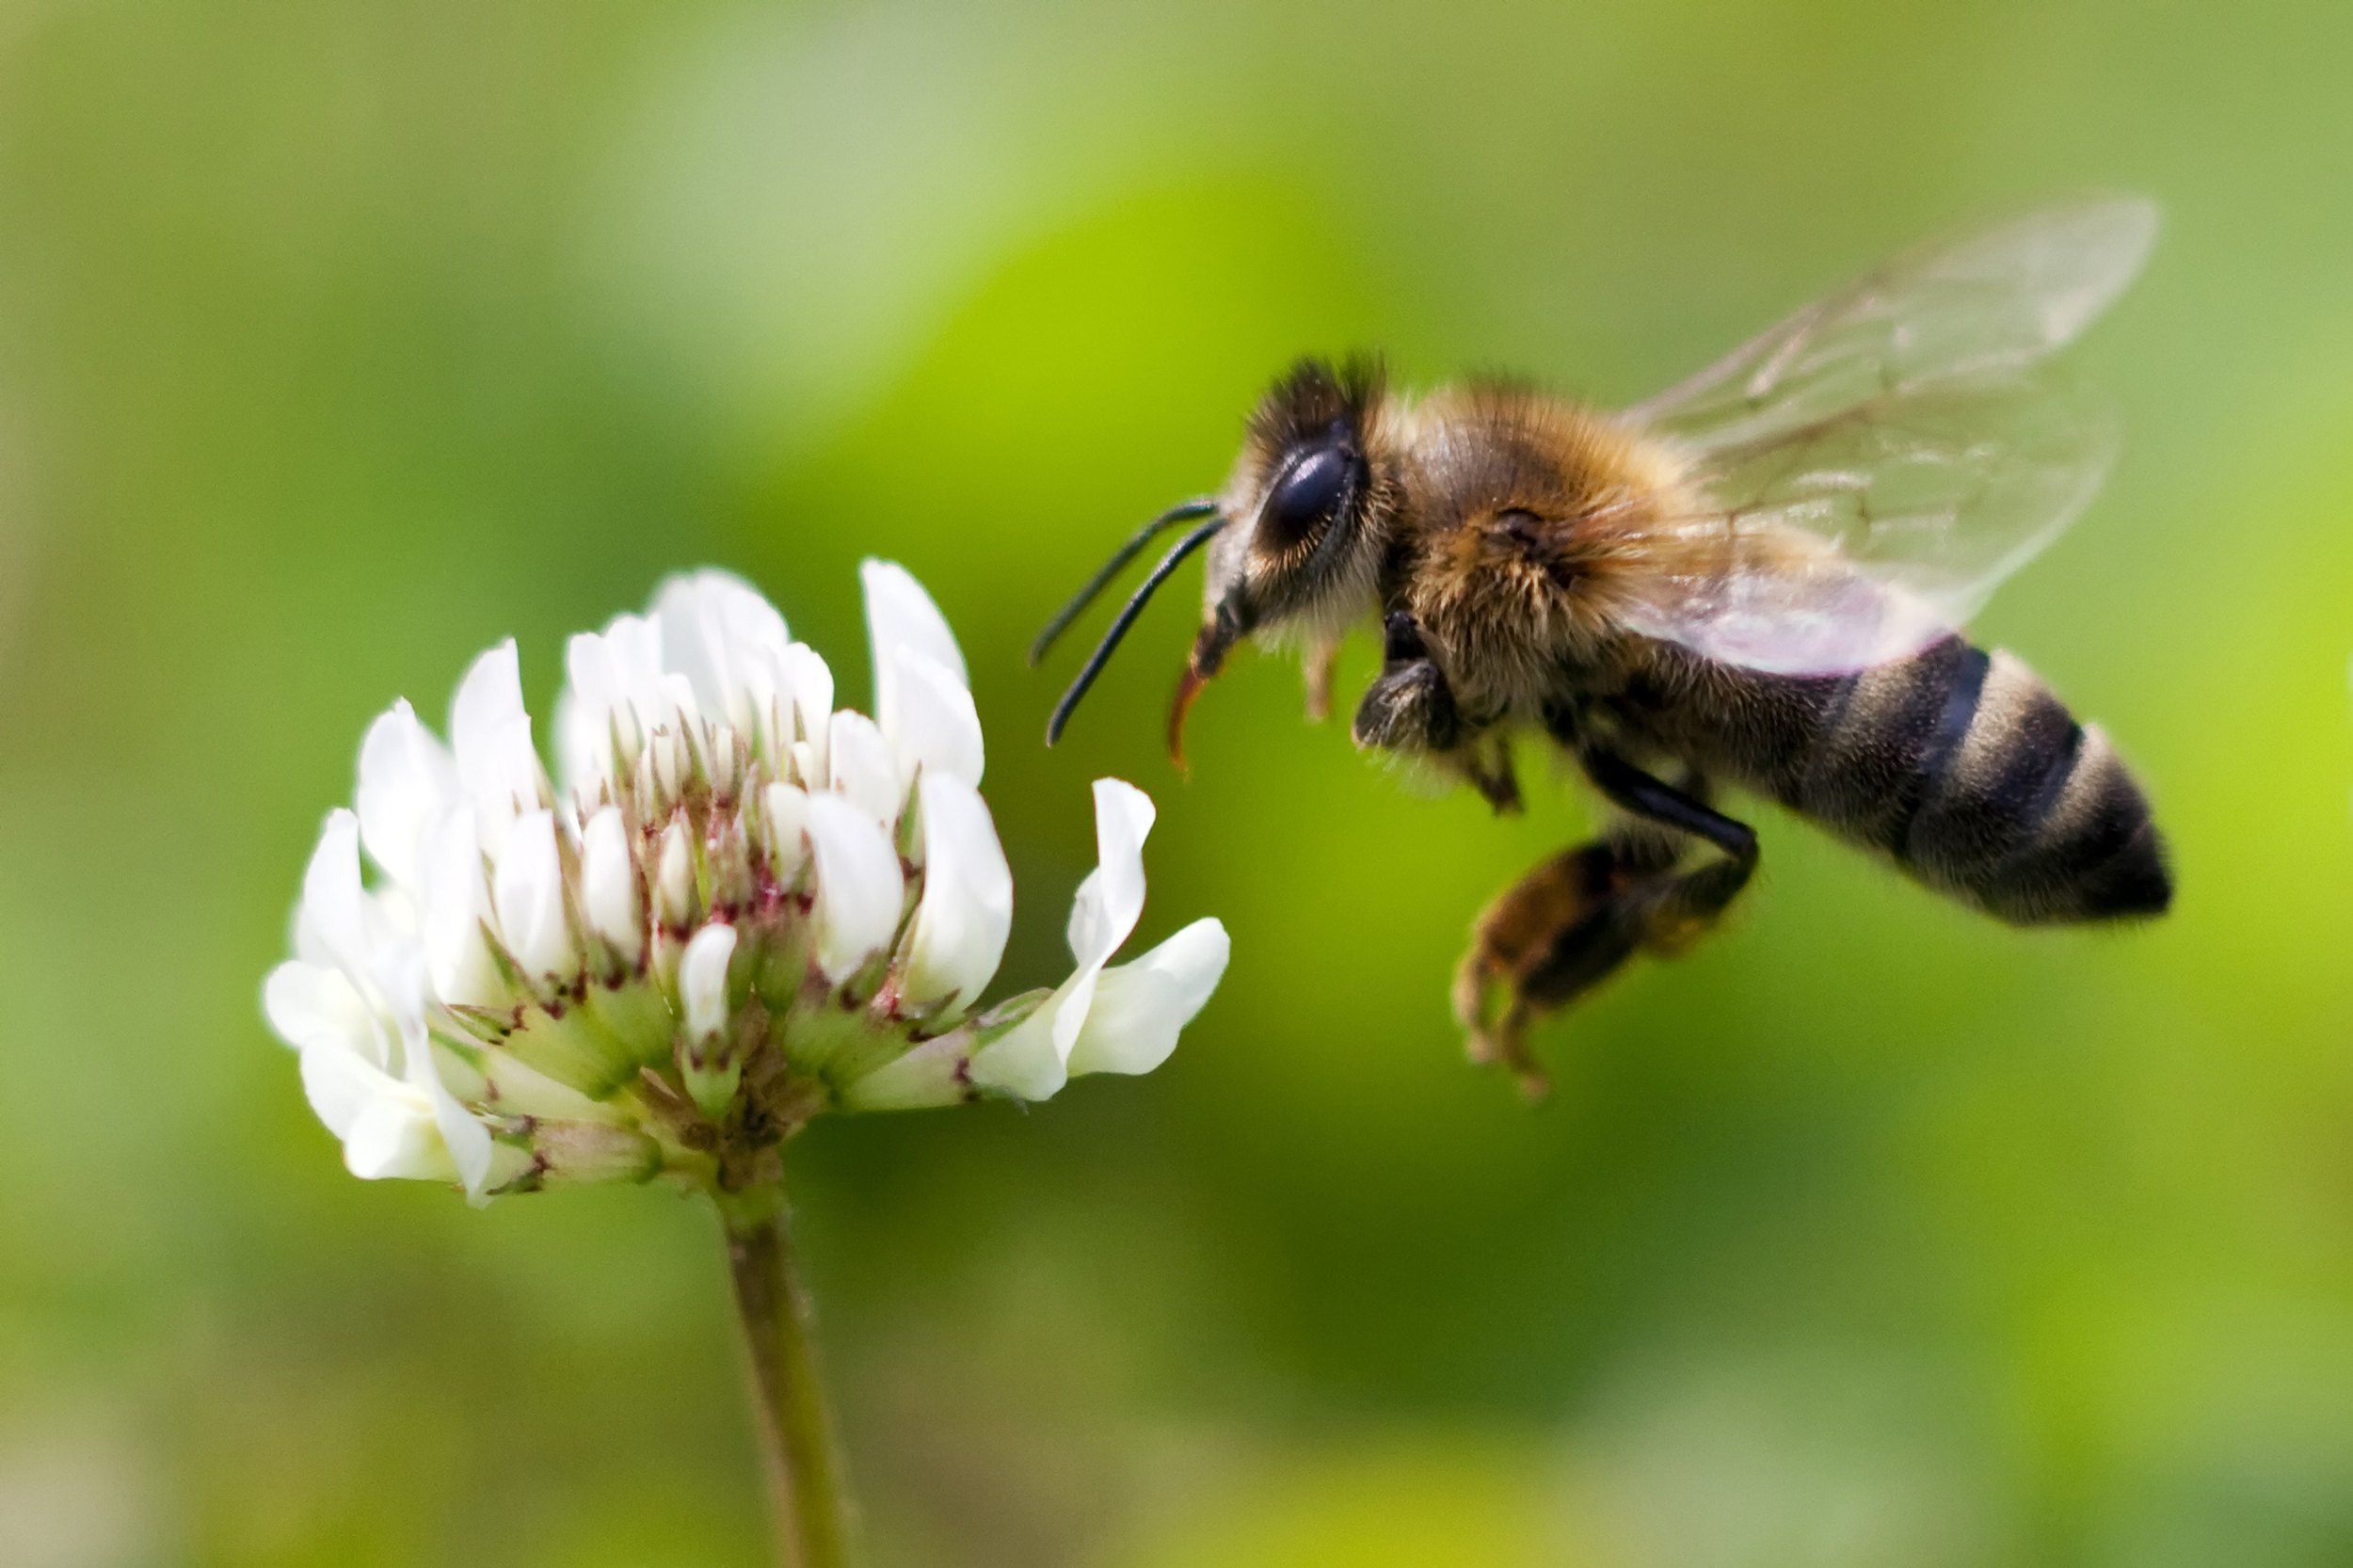 Bees will be used to deliver a new organic pesticide, but will it save them?